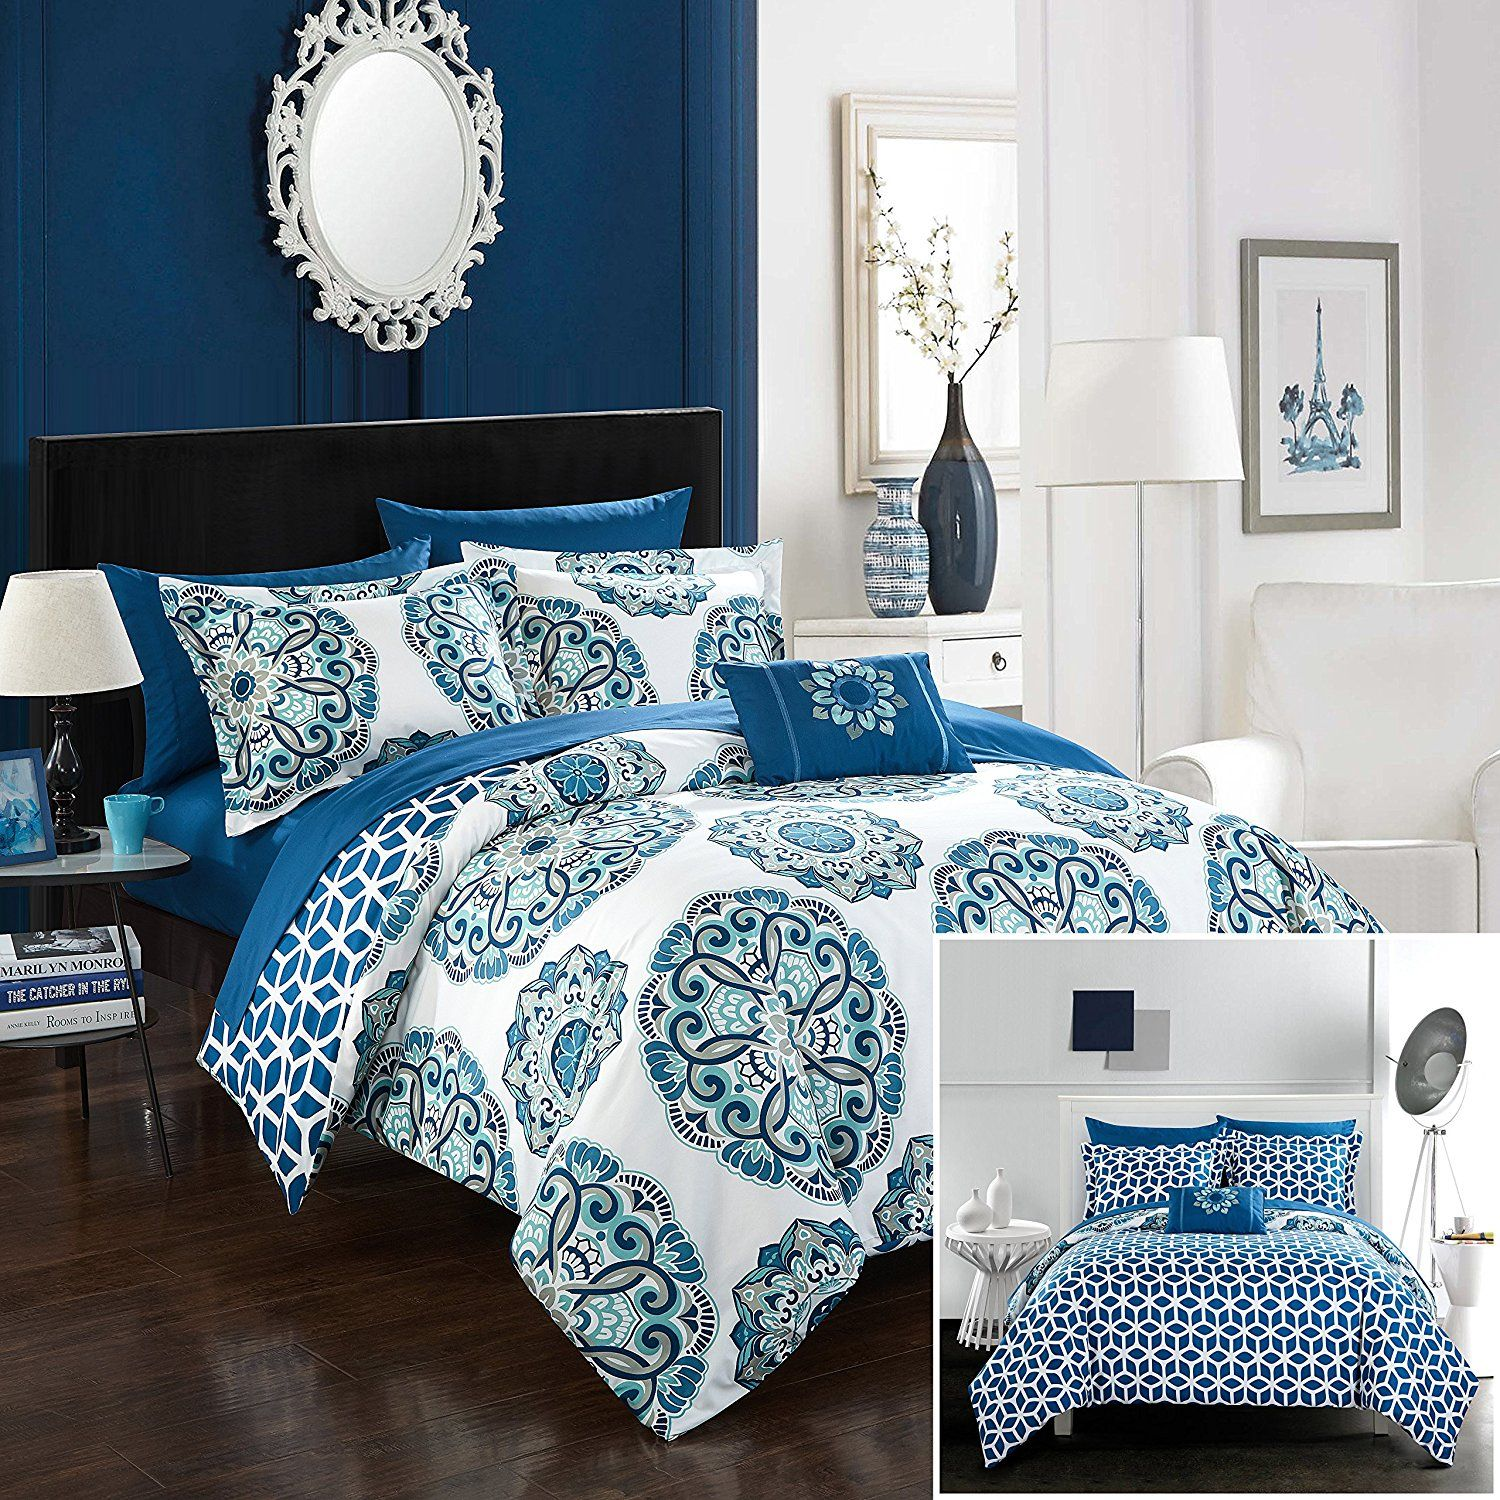 Blue and White Bedding Chic Home Barcelona 8 Piece Reversible